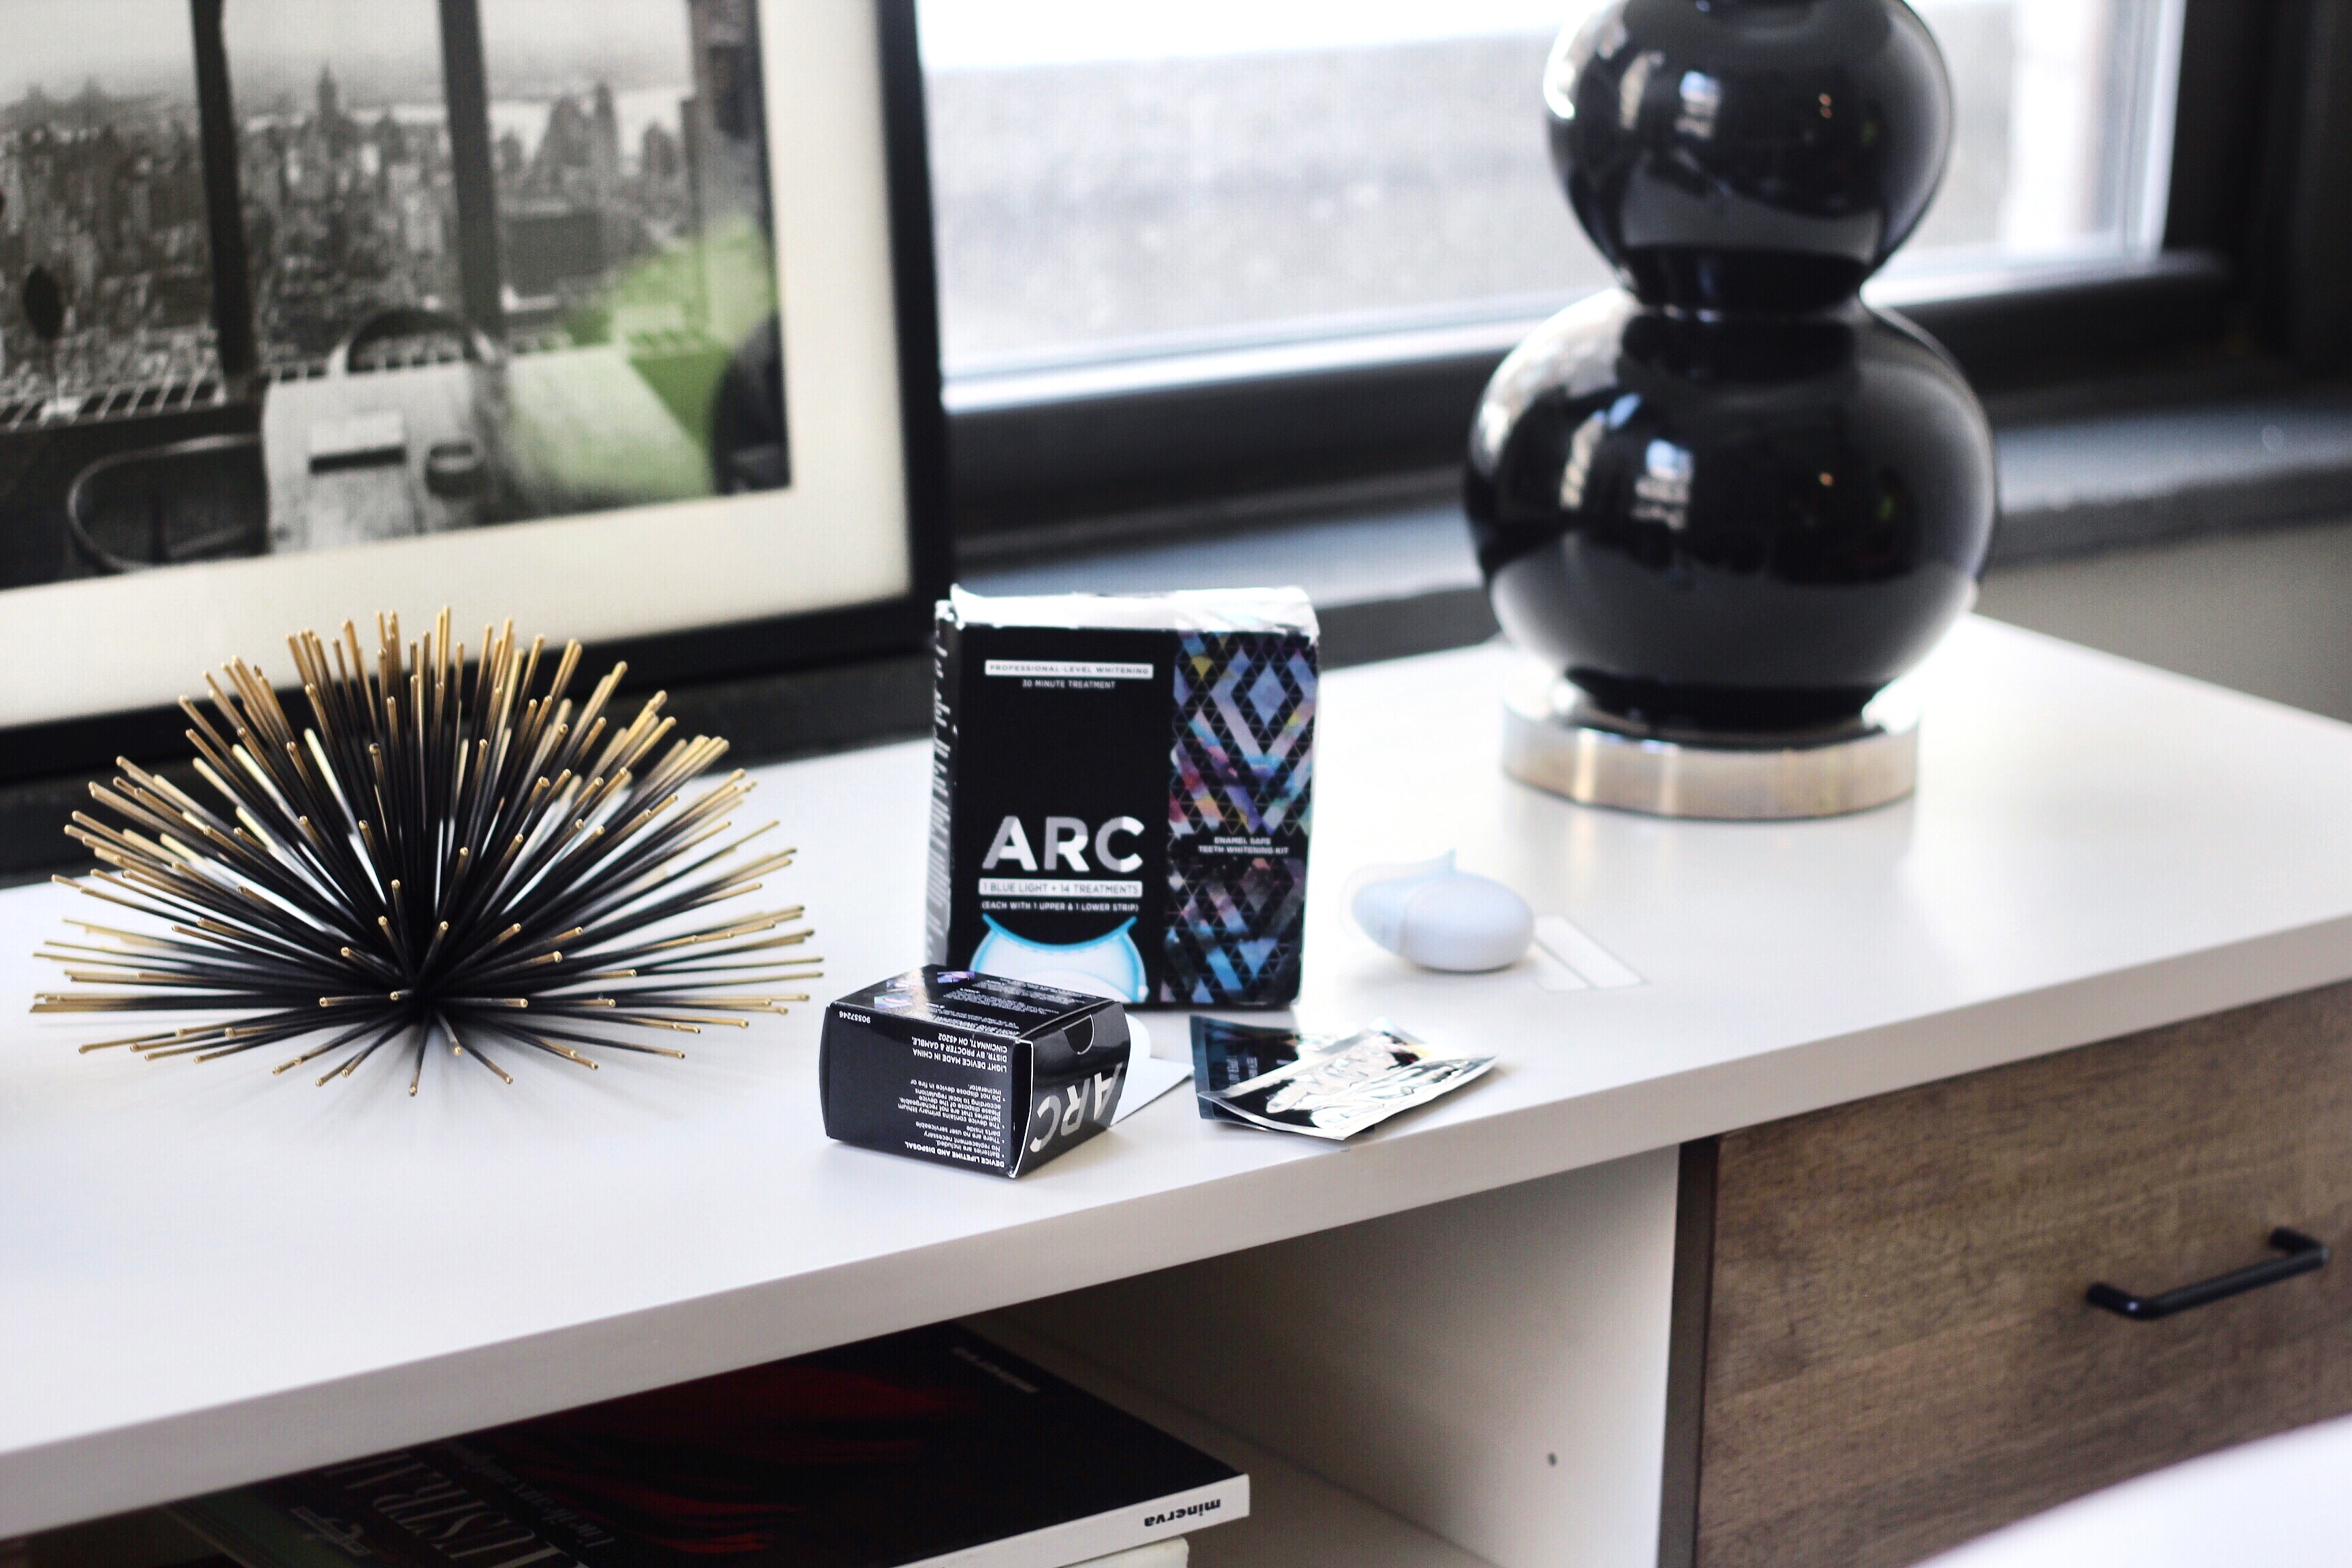 Shifting To Effective Confidence With Arc Teeth Whitening Kit